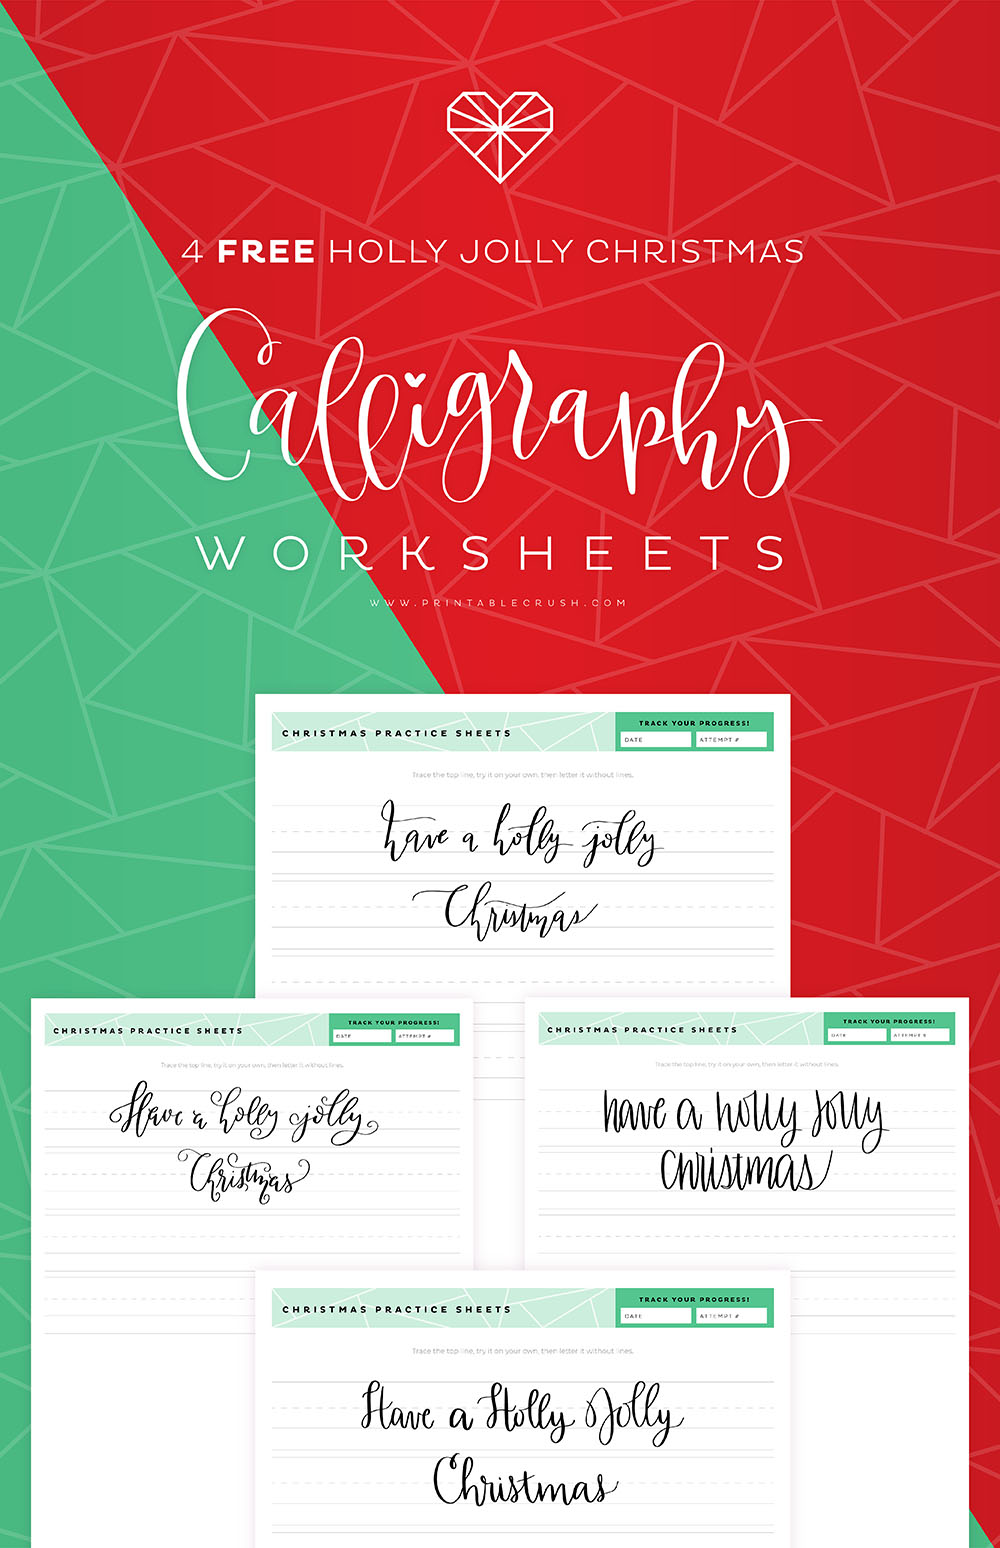 Practice your calligraphy pen skills with these FREE Holly Jolly Christmas Calligraphy Practice Sheets. You get four different designs with plenty of practice space. #calligraphypracticesheets #casualcalligraphy #casualcalligraphycourse #calligraphypractice #calligraphytutorial #freeprintable #freepracticesheet  #christmascalligraphyworksheet #hollyjollychristmas via @printablecrush